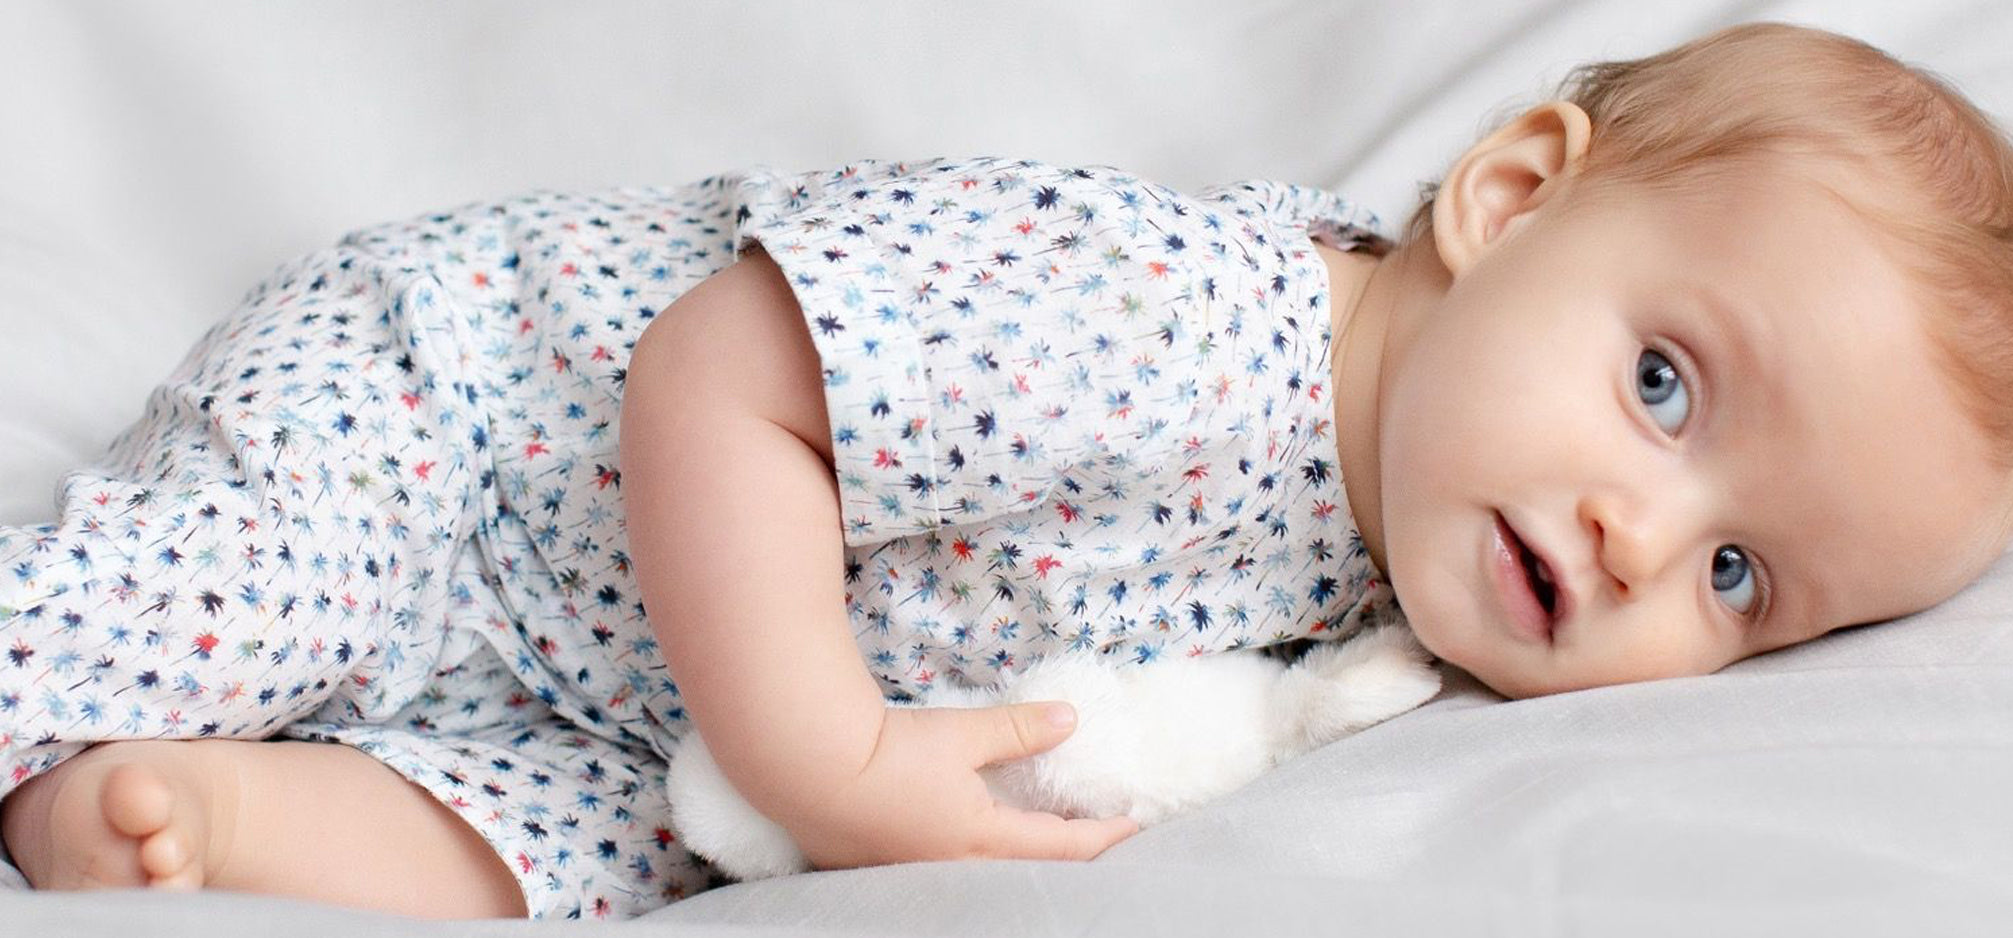 Baby laying down wearing a white cotton jumpsuit with an all over blue palm tree print.